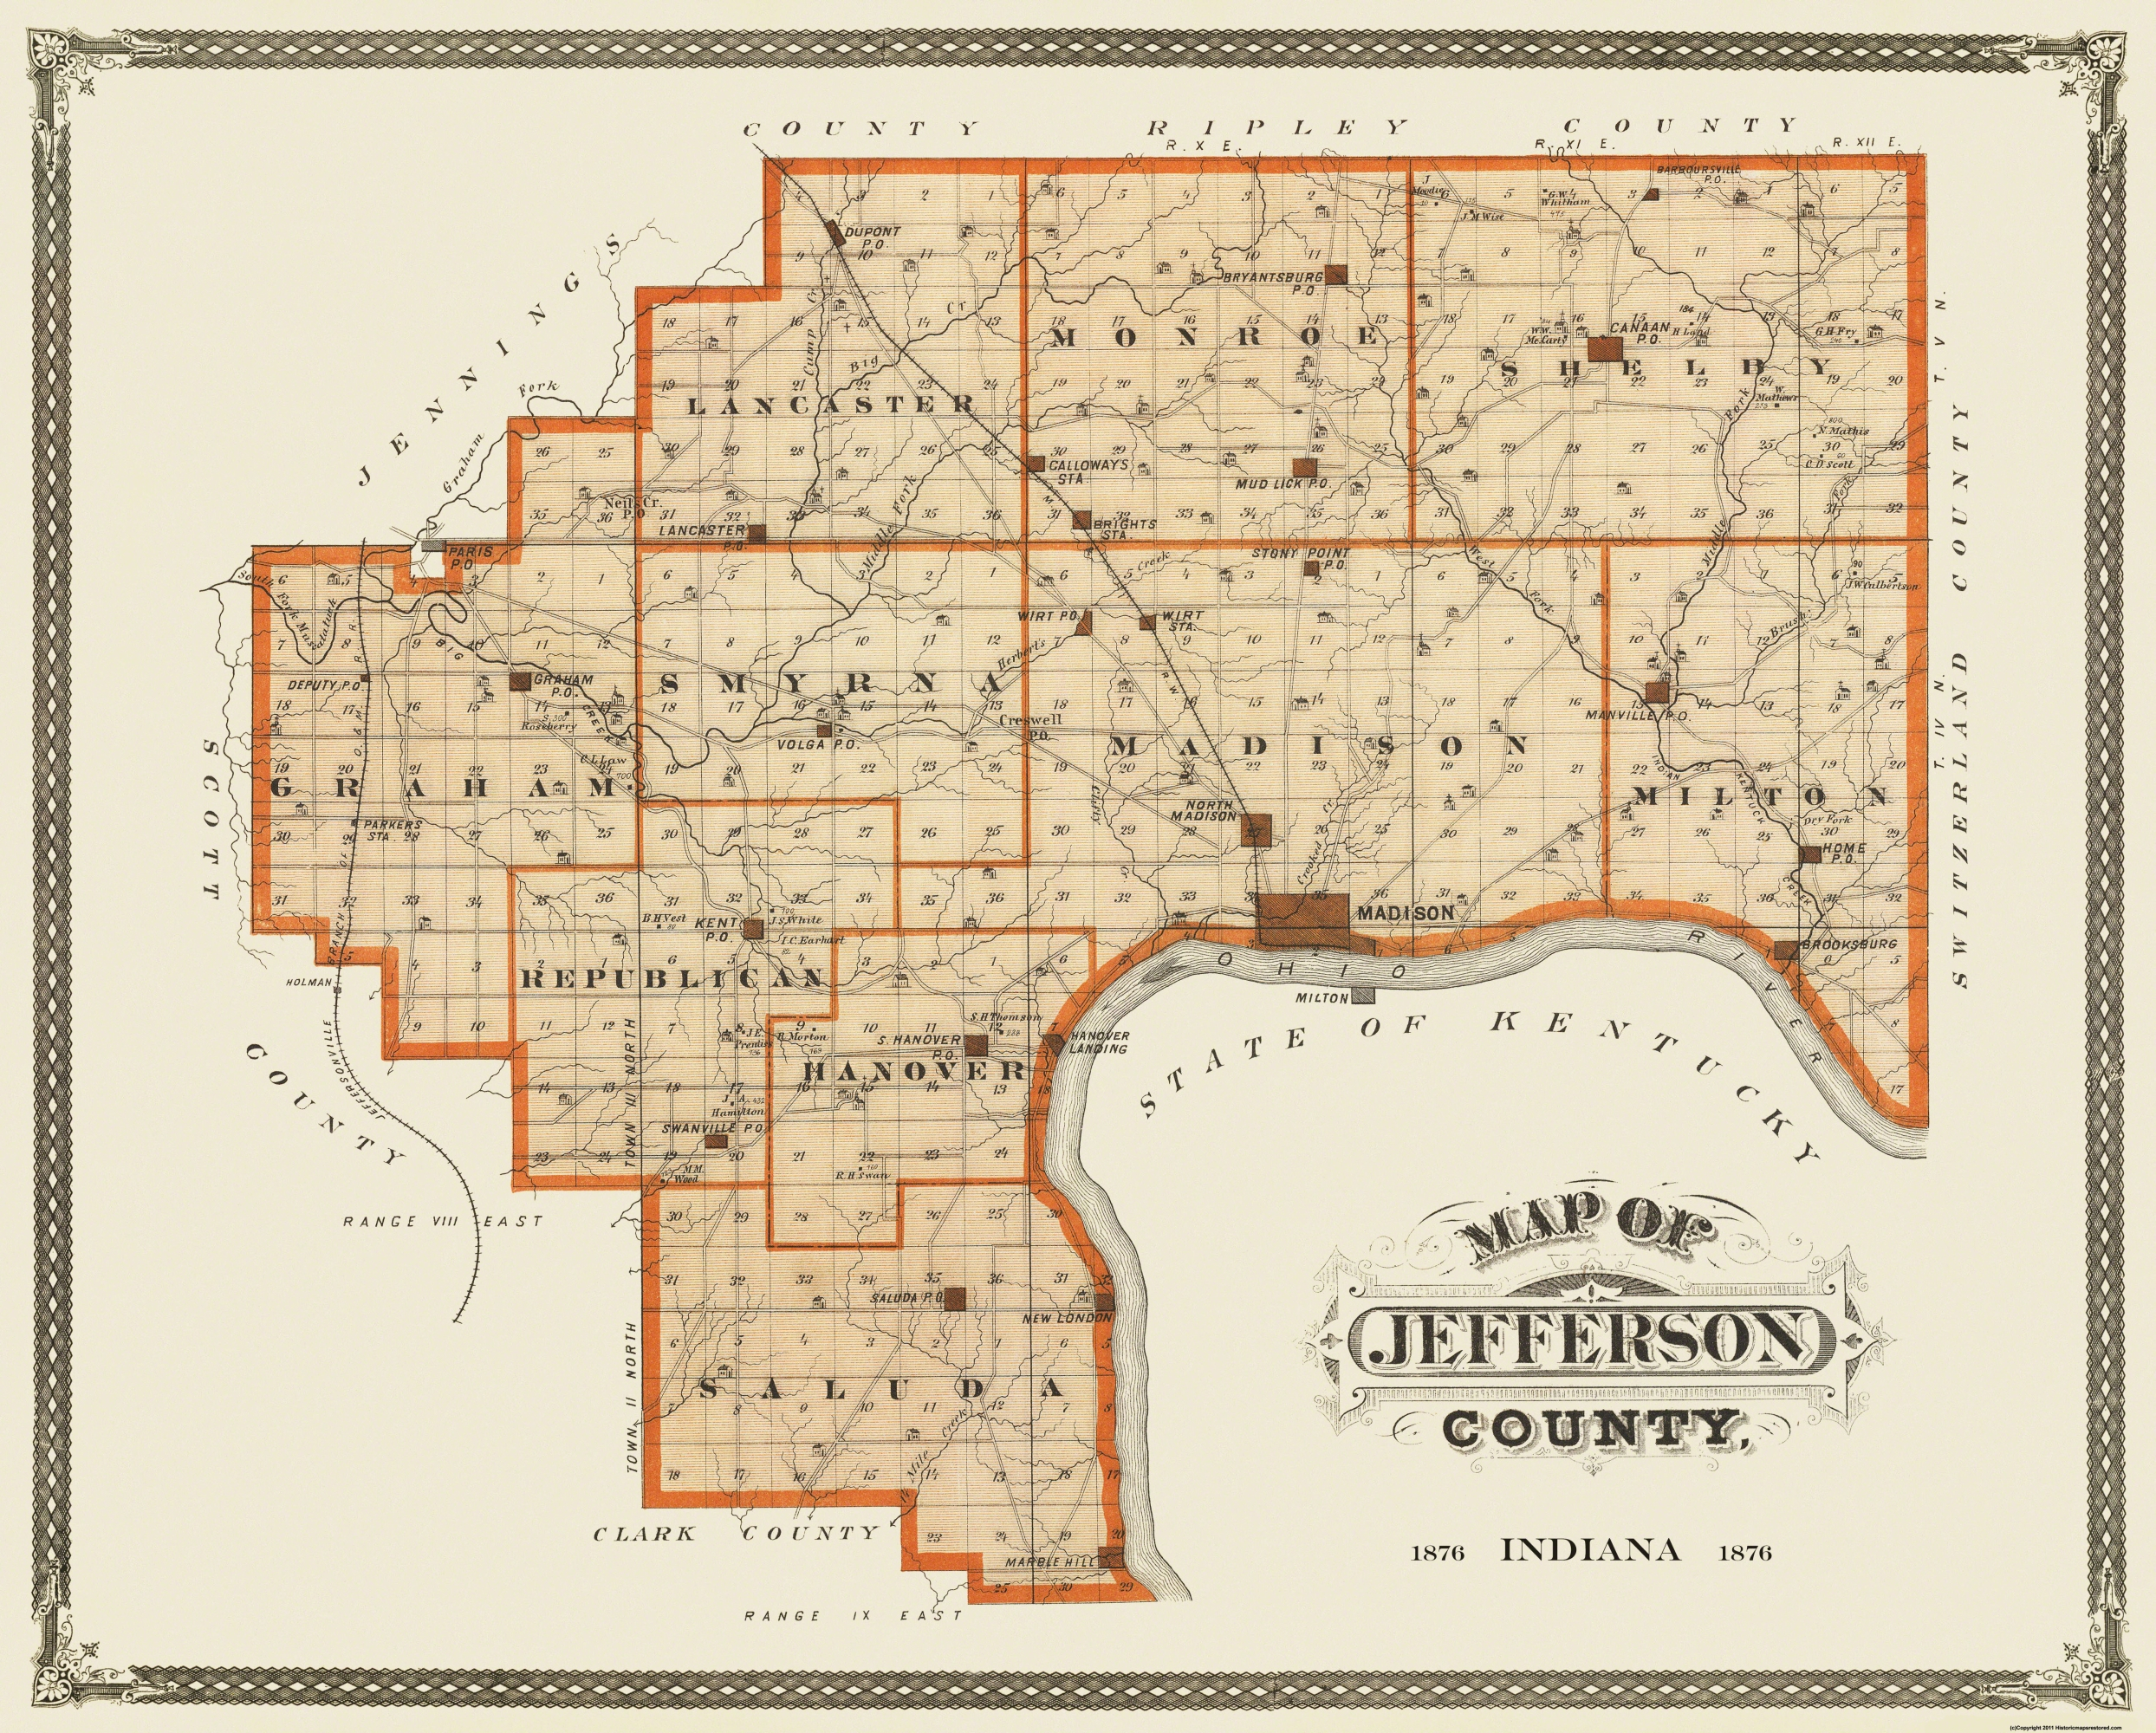 Jefferson County Indiana Map.Old County Map Jefferson Indiana Landowner 1876